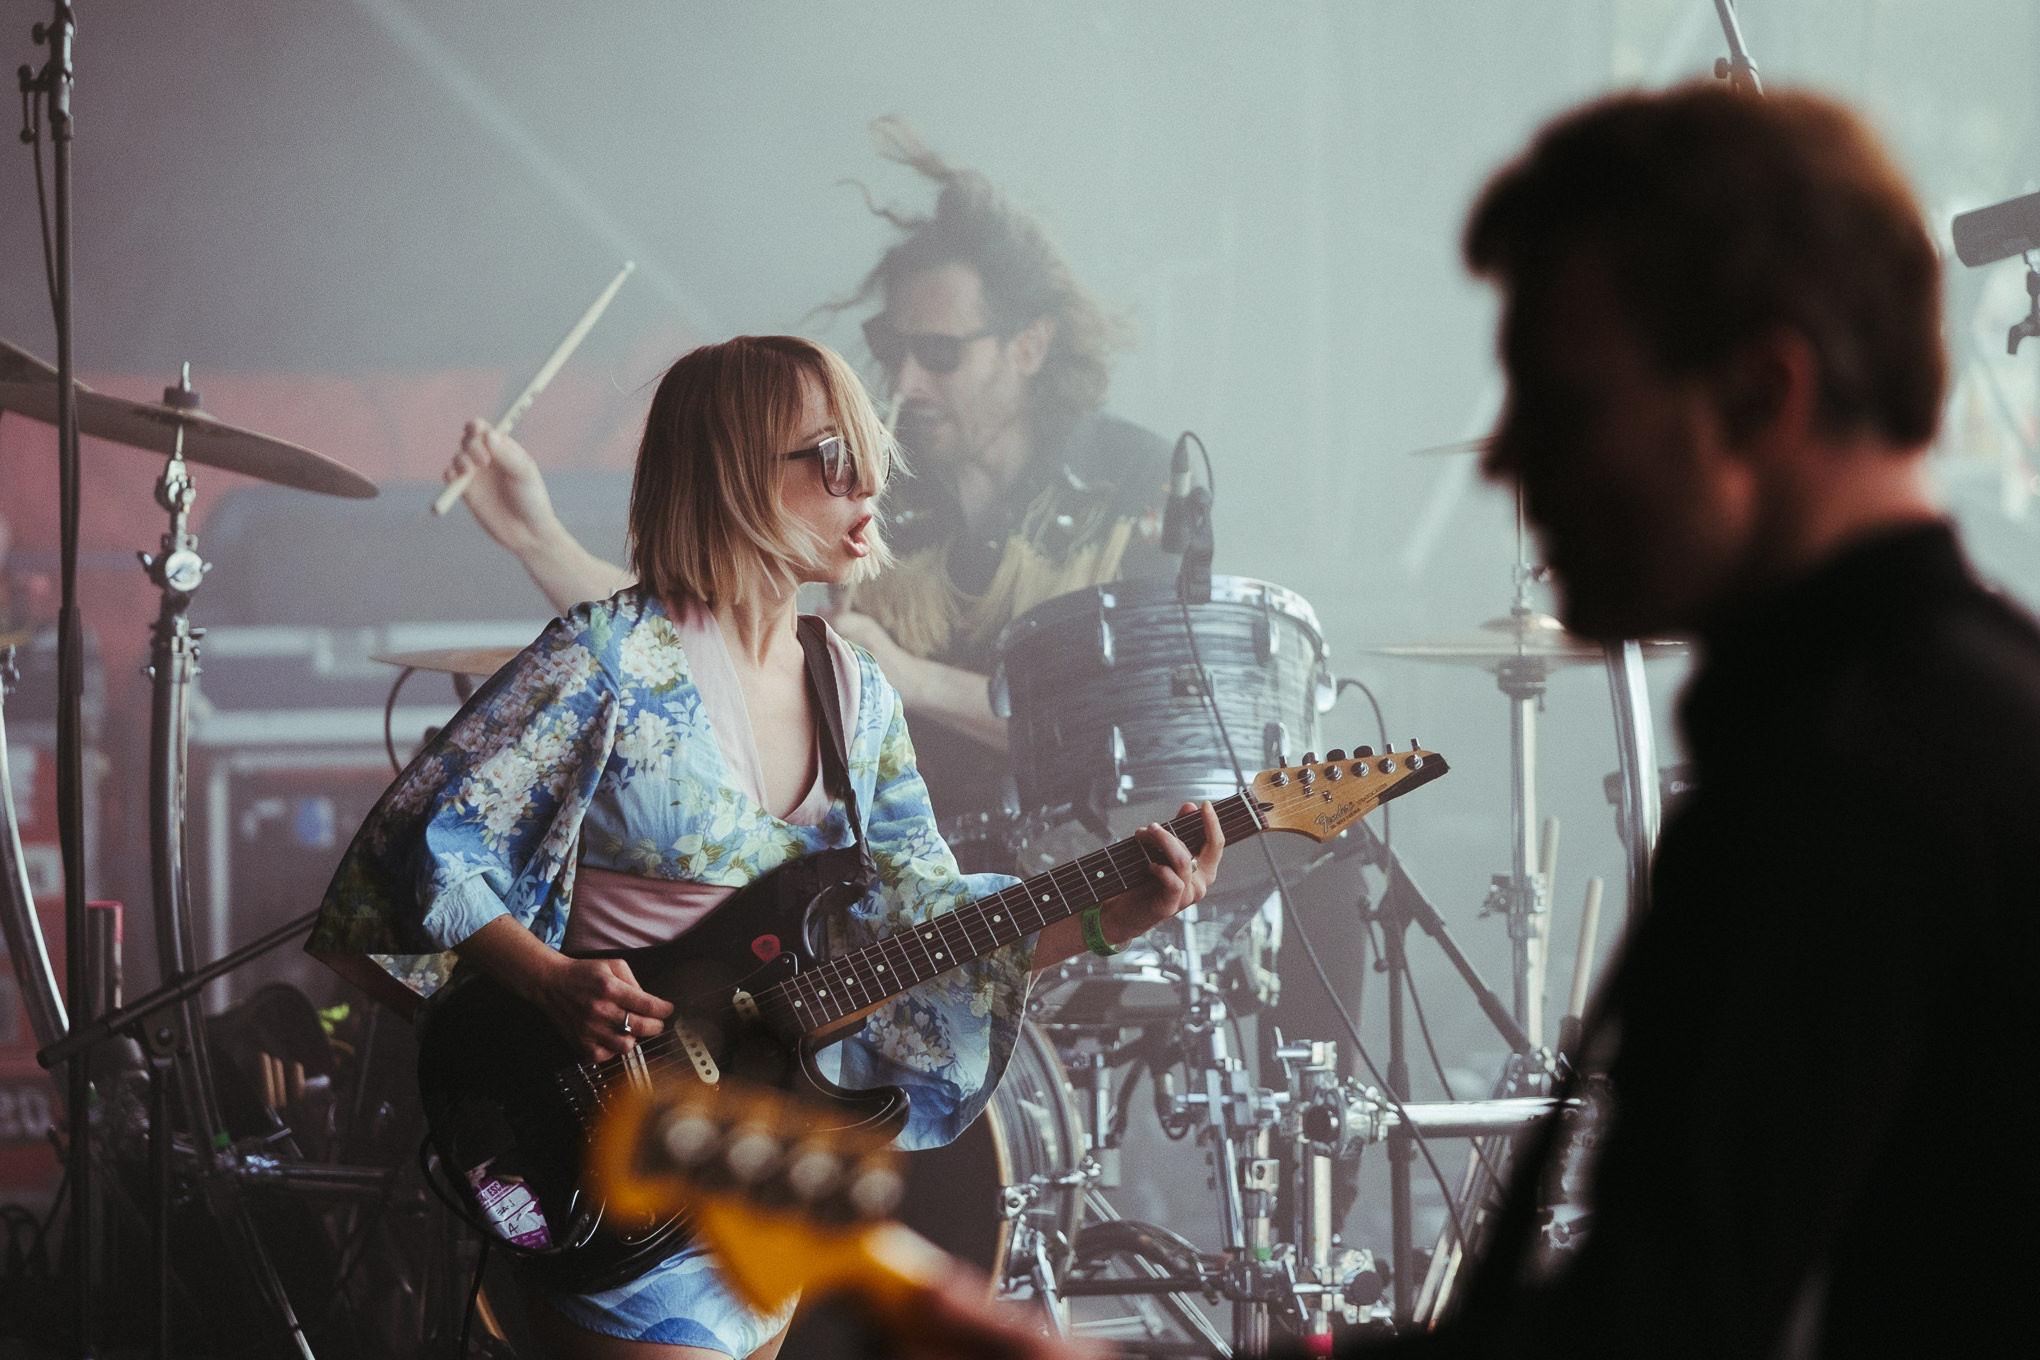 20190816_The Joy Formidable_001.jpg